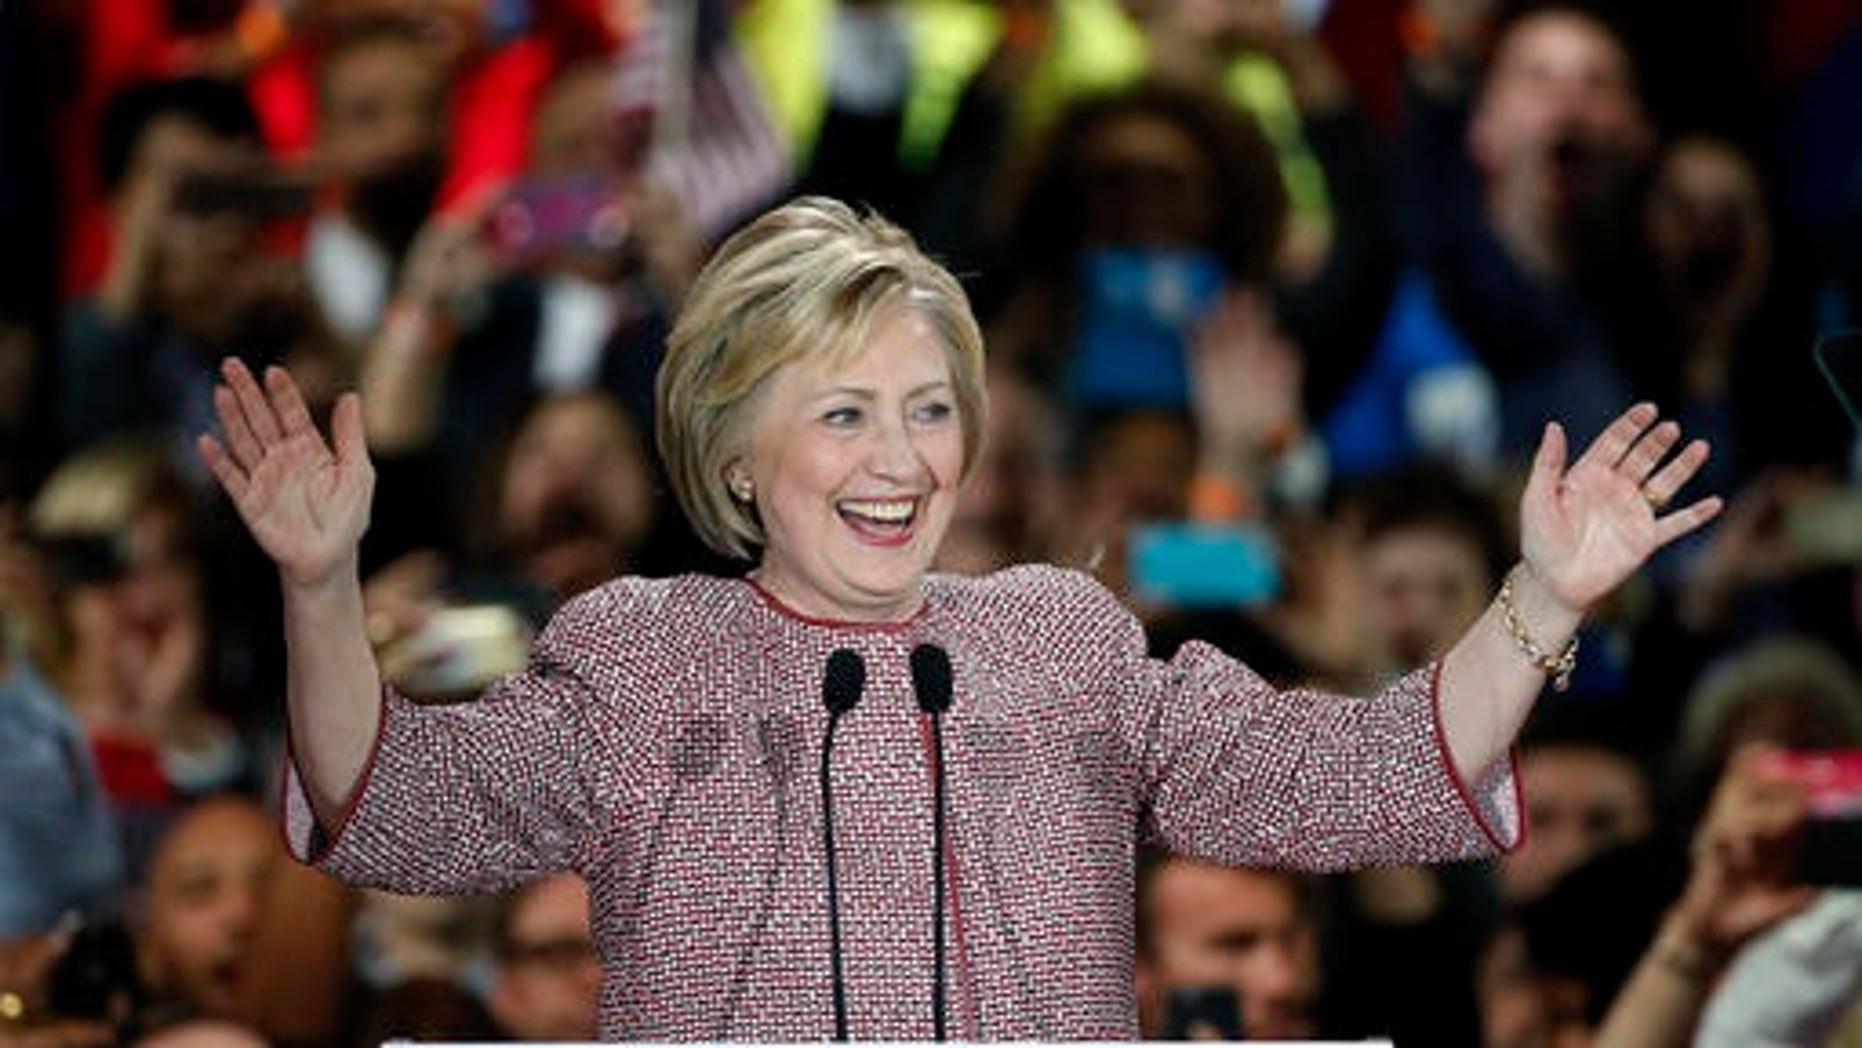 Democratic presidential candidate Hillary Clinton celebrates on stage after winning the New York state primary Tuesday, April 19, 2016, in New York. (AP Photo/Kathy Willens)